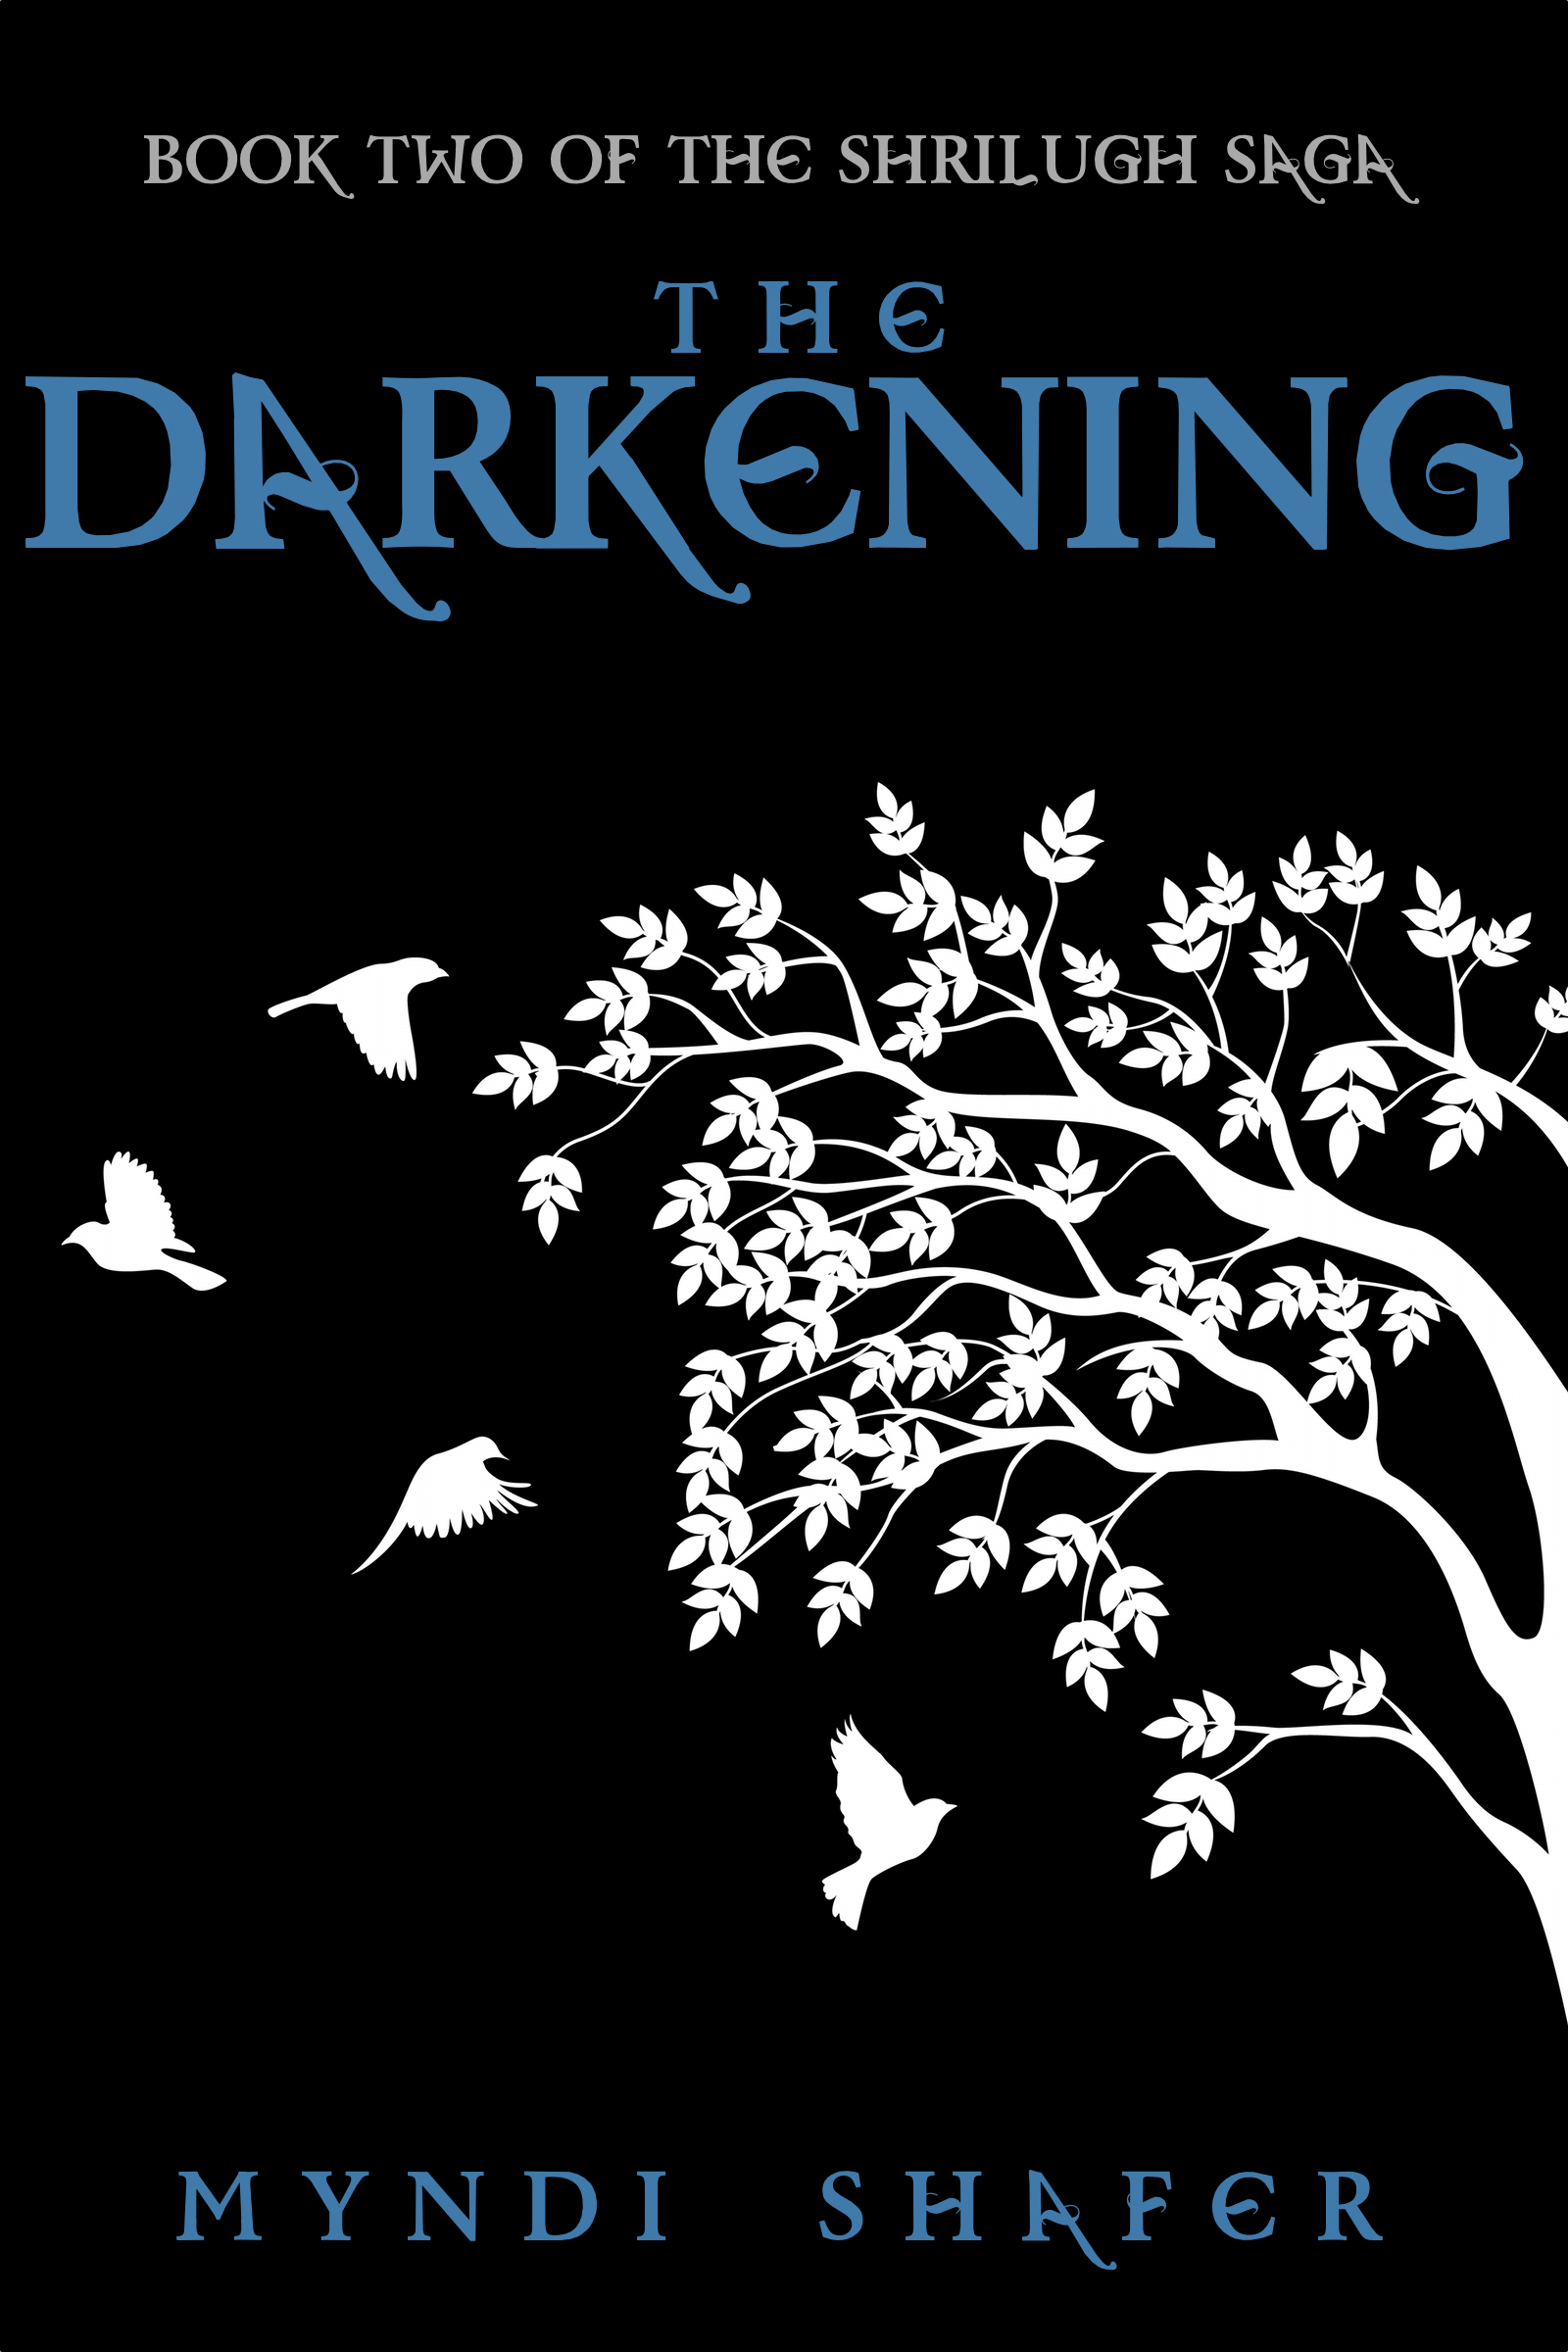 Book Review: The Darkening by Myndi Shafer